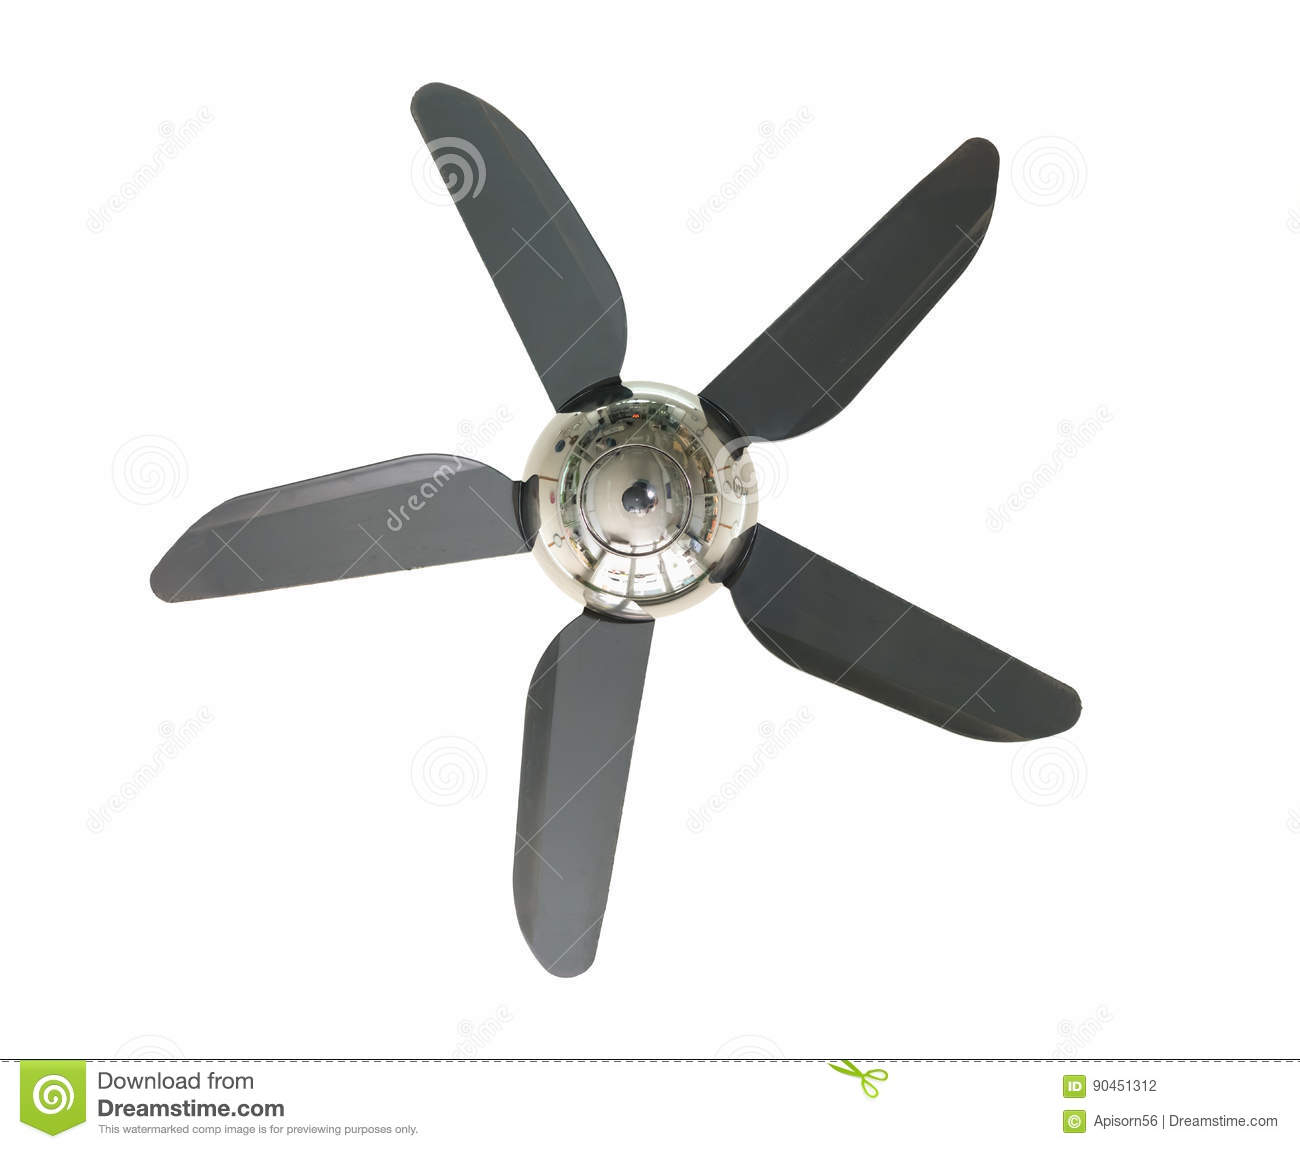 Propeller Ceiling Fan White : Propeller and ceiling fan isolated stock photo image